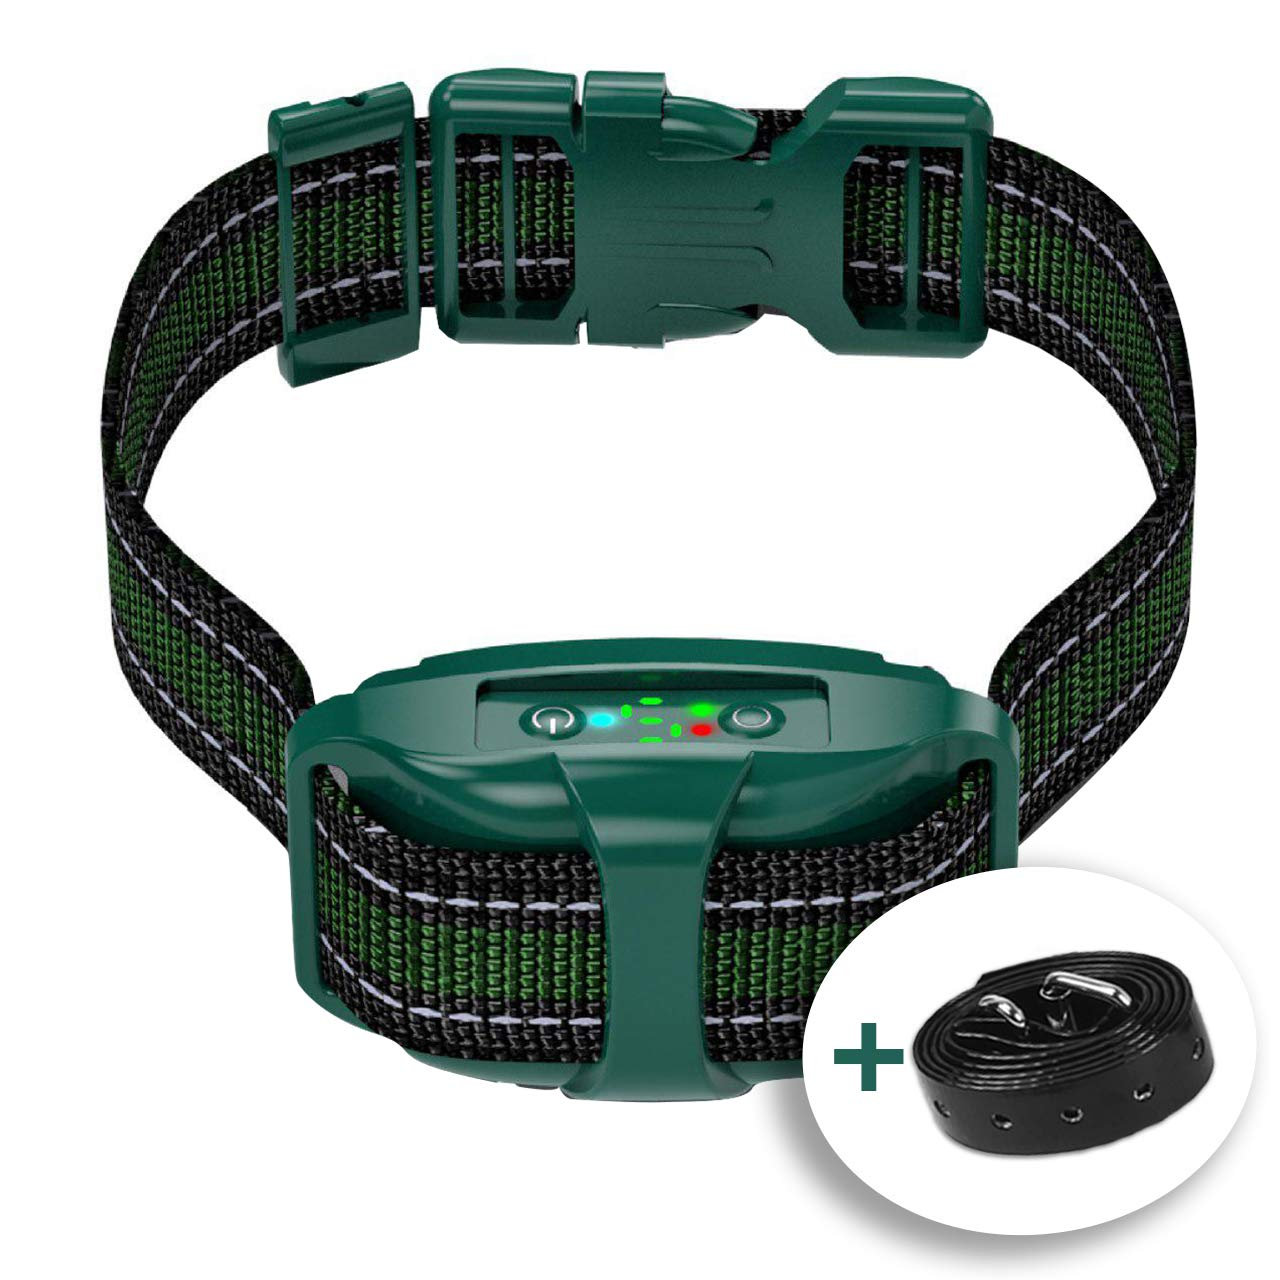 V7 Pro - Bark Collar for Small & Medium Dogs - Most Tunnel Humane Effective Vibration Rechargeable Upgraded 2020 - Anti-Barking Collar to Stop Barking - No Shock Waterproof - Safe Pet Control by TBI Pro